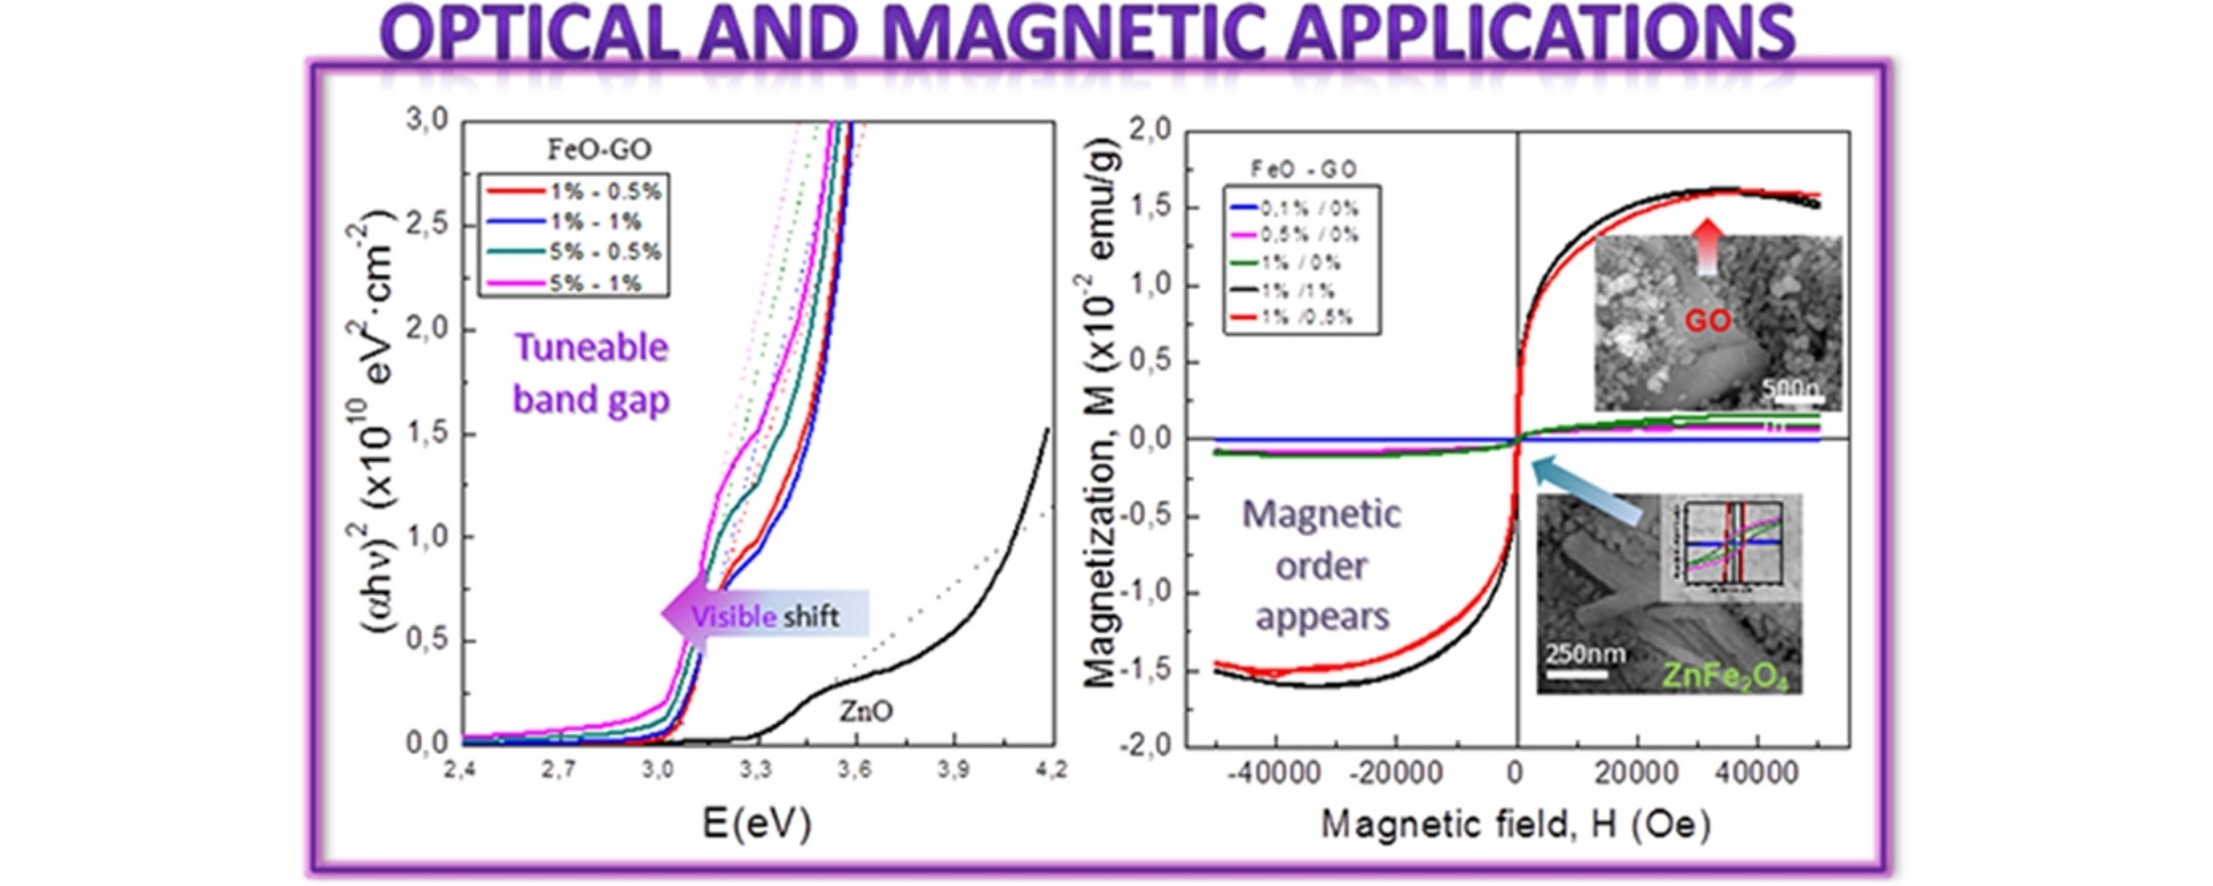 Multifunctional ZnO/Fe-O and graphene oxide nanocomposites: Enhancement of optical and magnetic properties